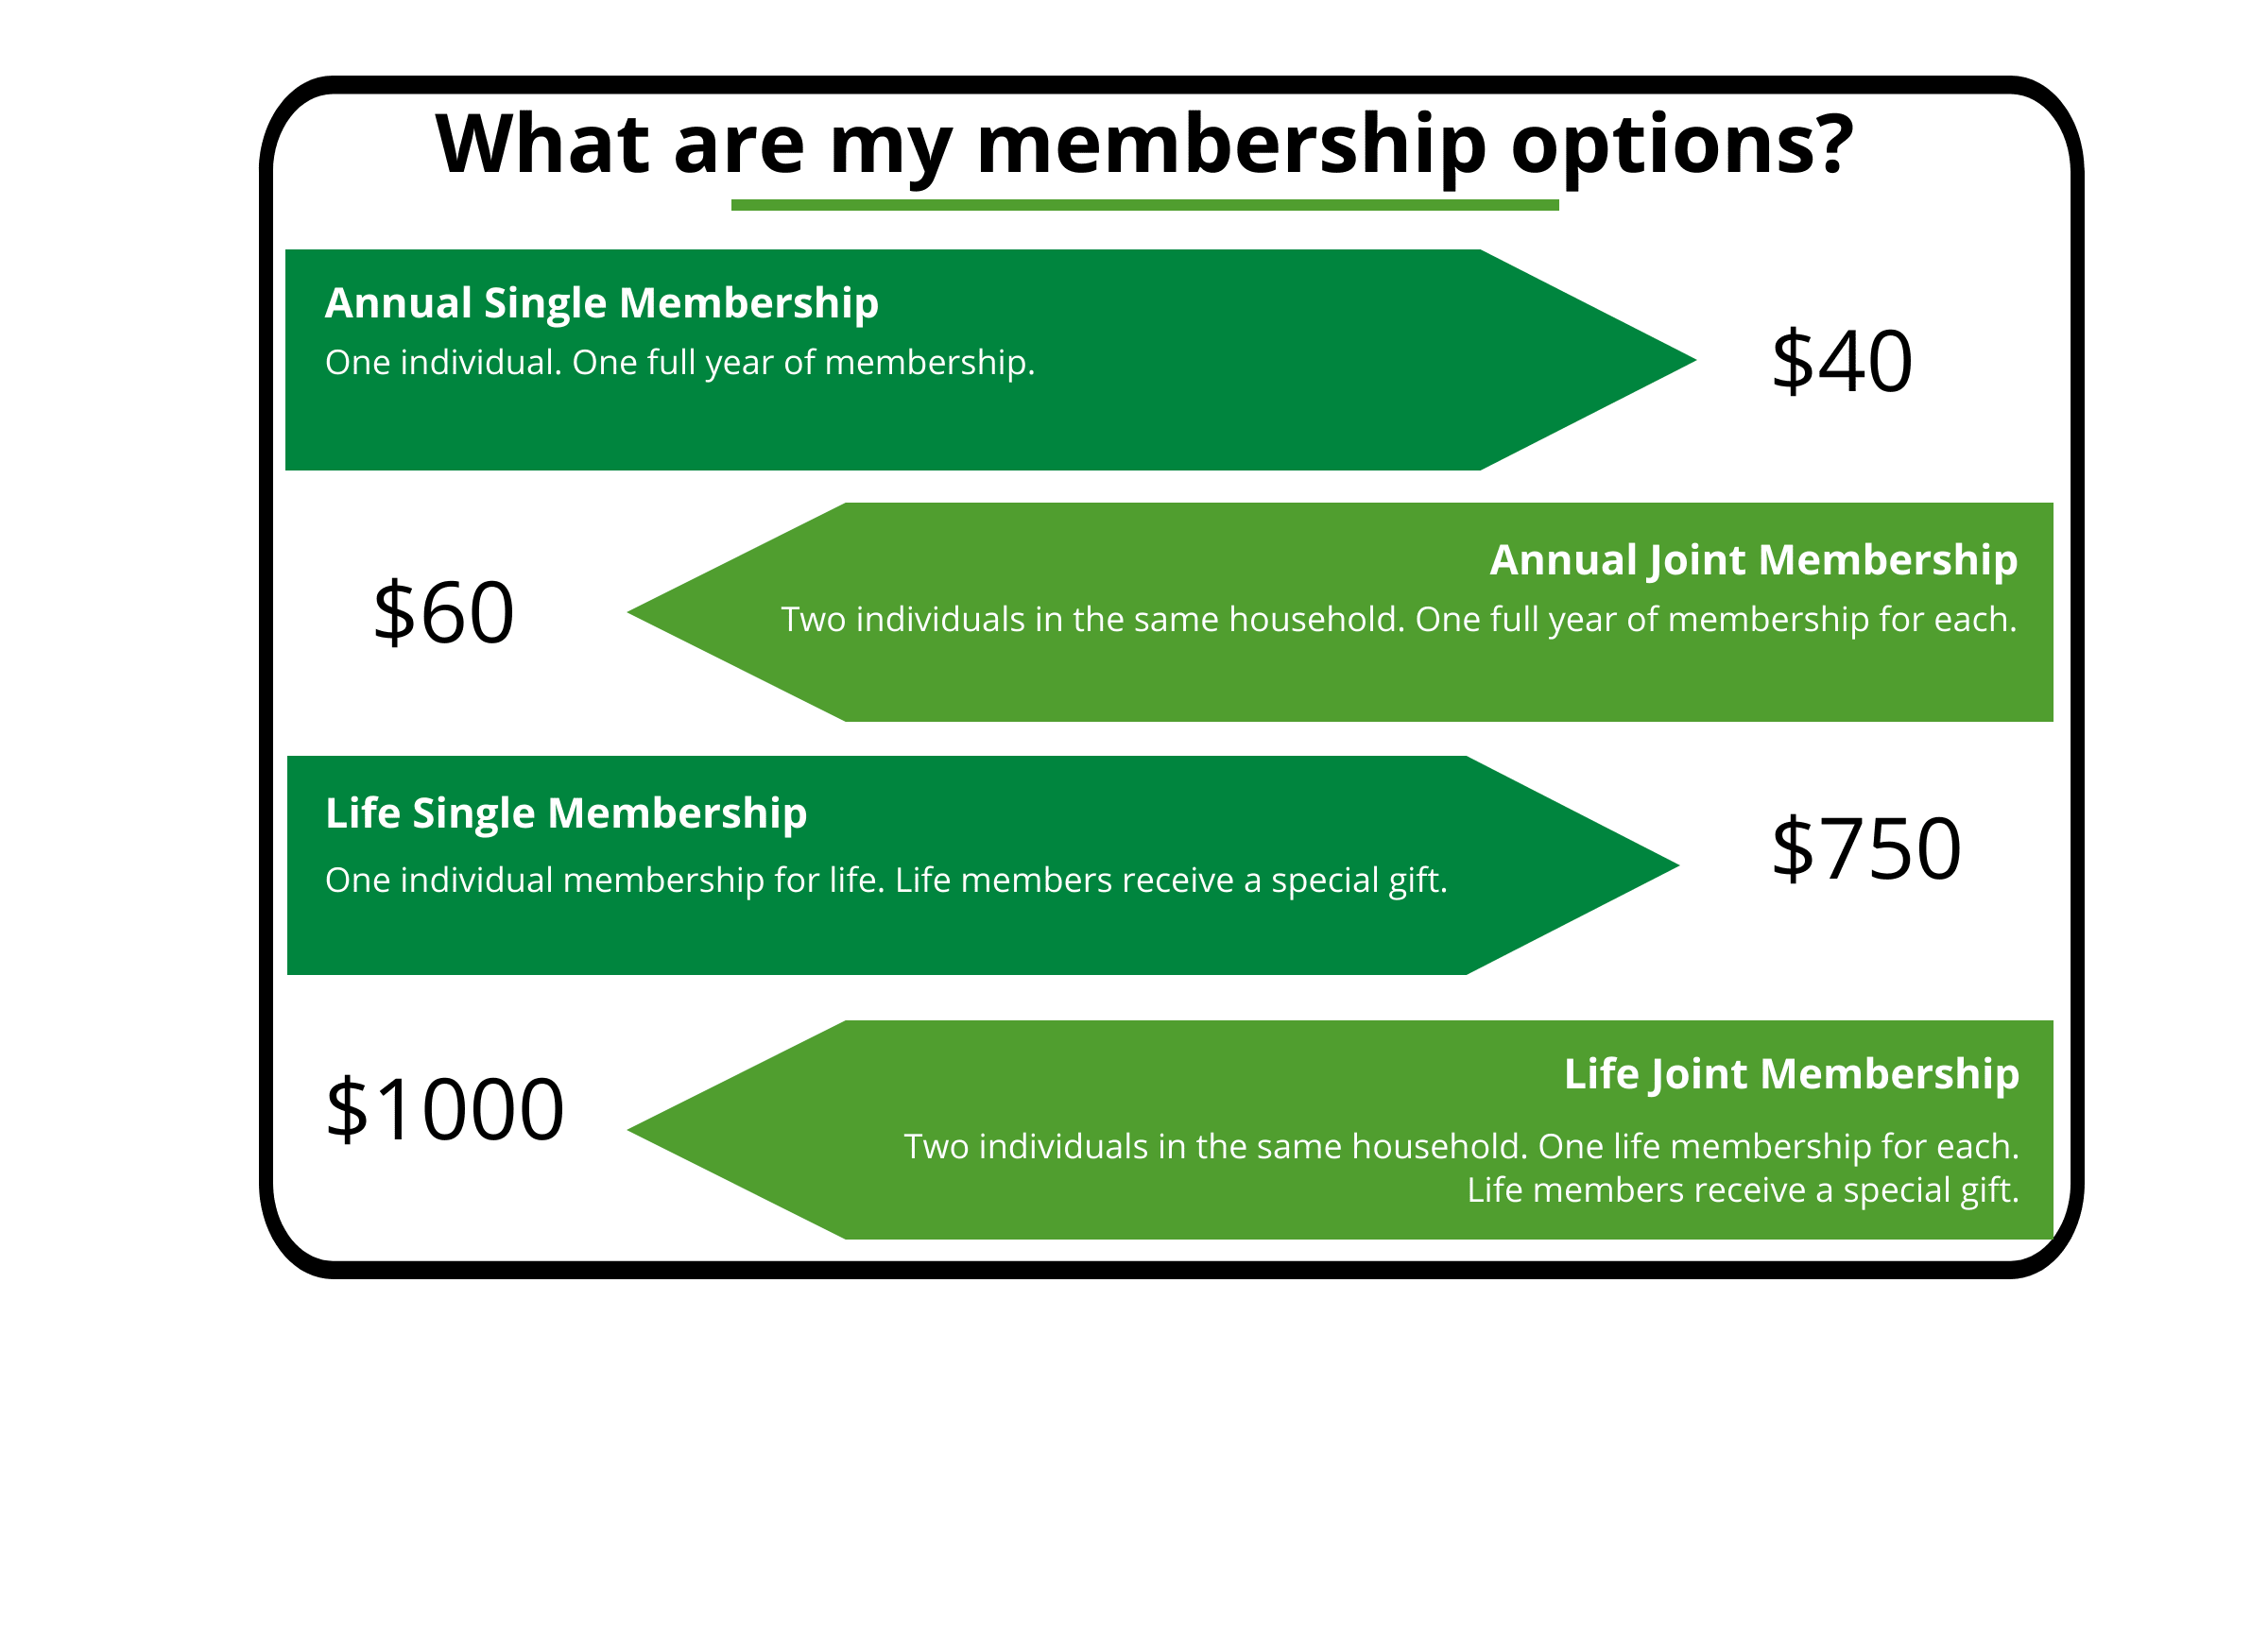 ANNUAL SINGLE–$40 One individual. One full year of membership.   ANNUAL JOINT–$60 Two individuals in the same household. One full year of membership for each.   LIFE SINGLE–$750 One individual membership for life. Life members receive a special gift.  LIFE JOINT–$1,000 Two individuals in the same household. One life membership for each. Life members receive a special gift.